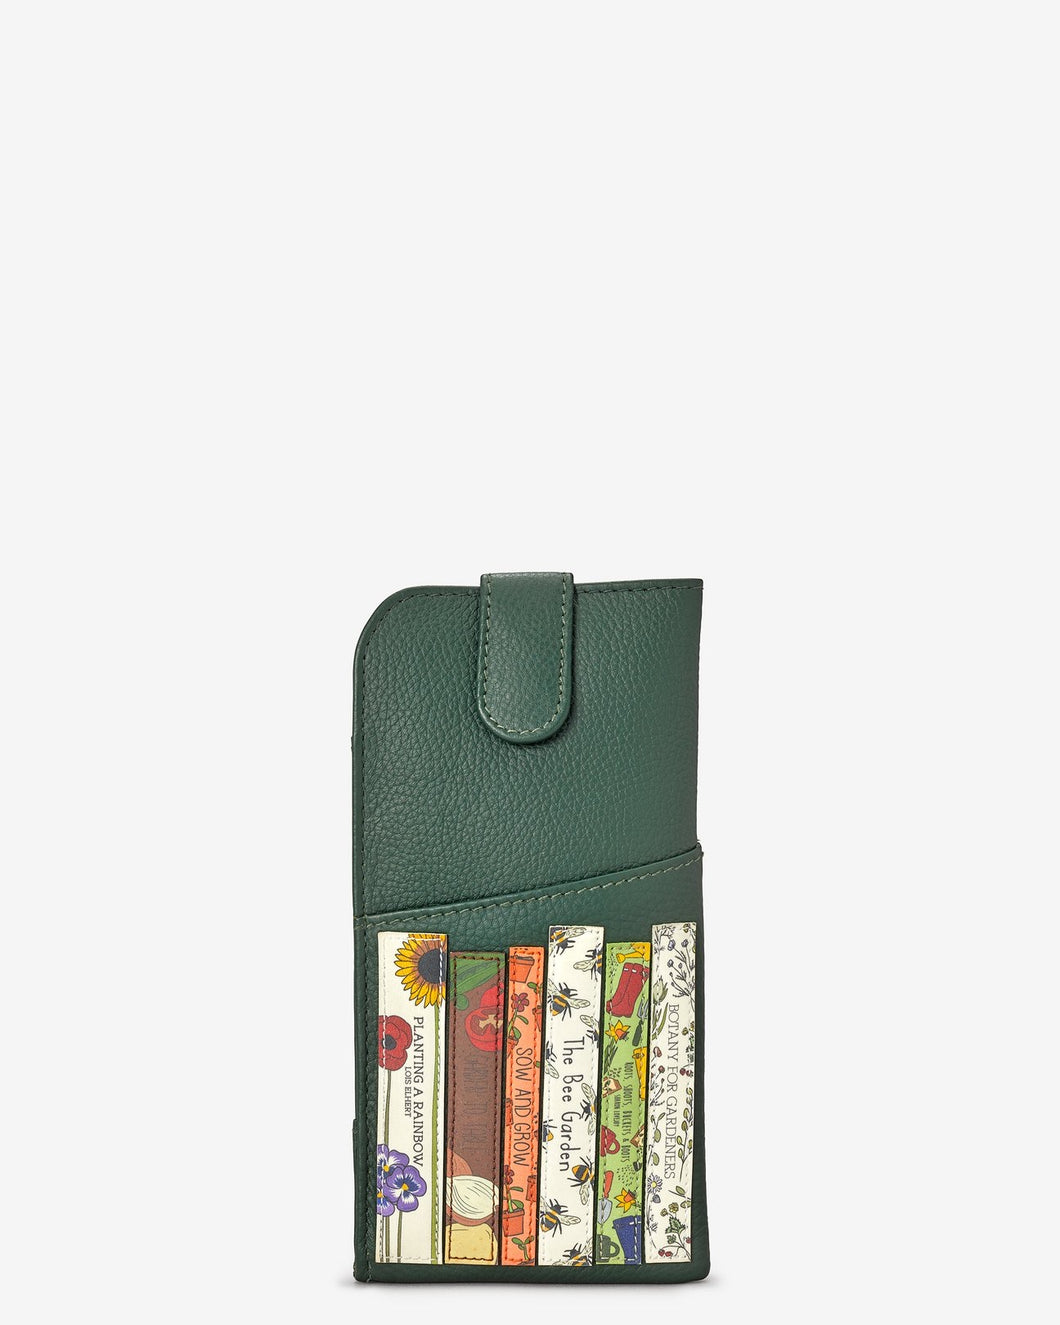 Yoshi Green Fingers Bookworm Leather Chilton Glasses Case - Sands Boutique clothing and gifts